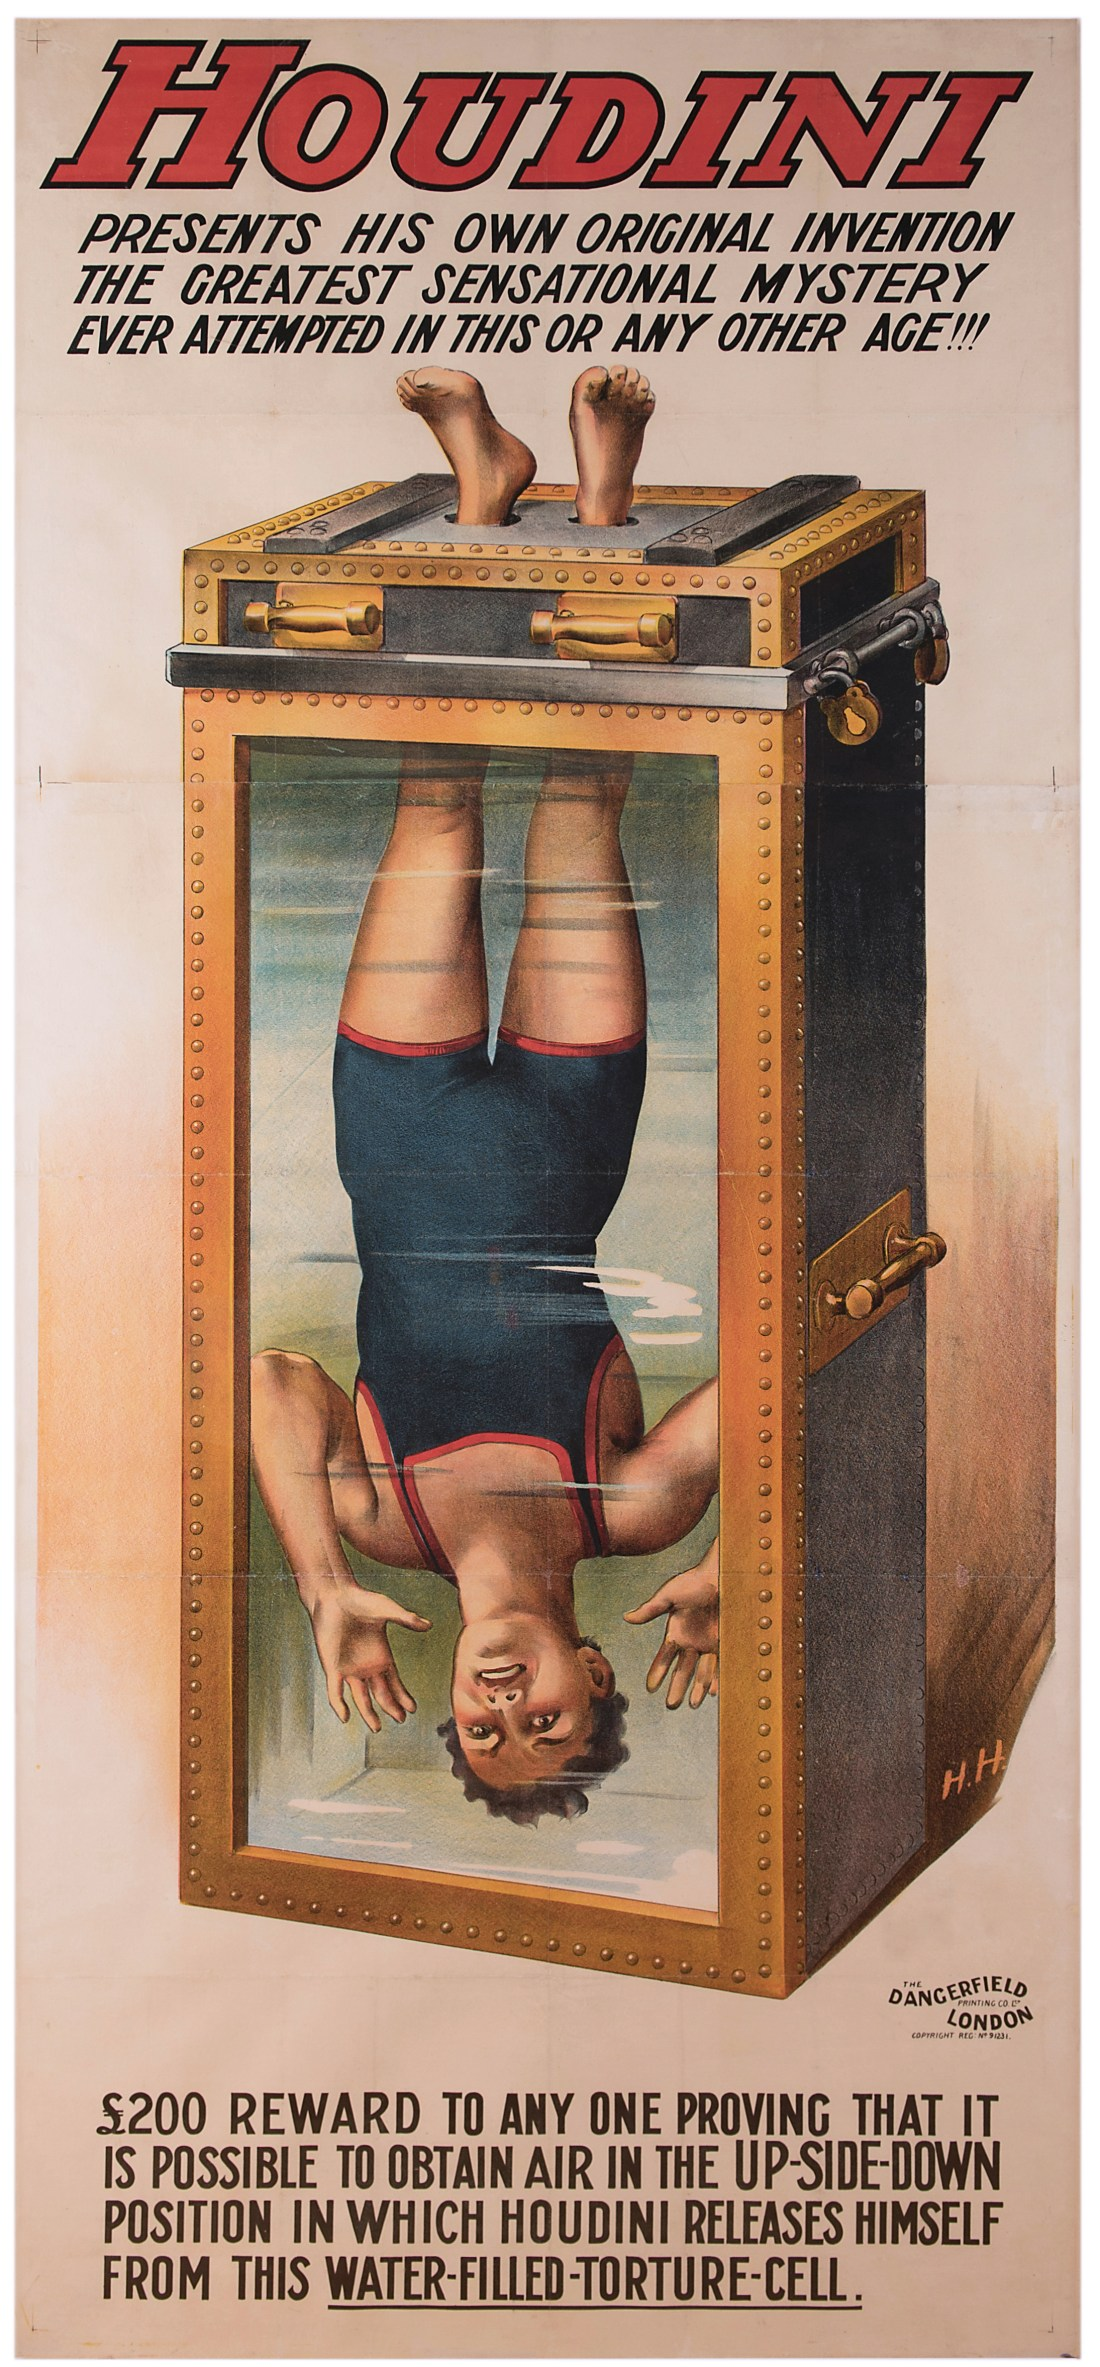 A 1912 poster touting Harry Houdini performing his famous water torture cell escape. It was printed in London one year after Houdini invented the trick, and it has a B+ condition rating. Potter & Potter sold it in February 2017 for $114,000--an auction record for any magic poster.